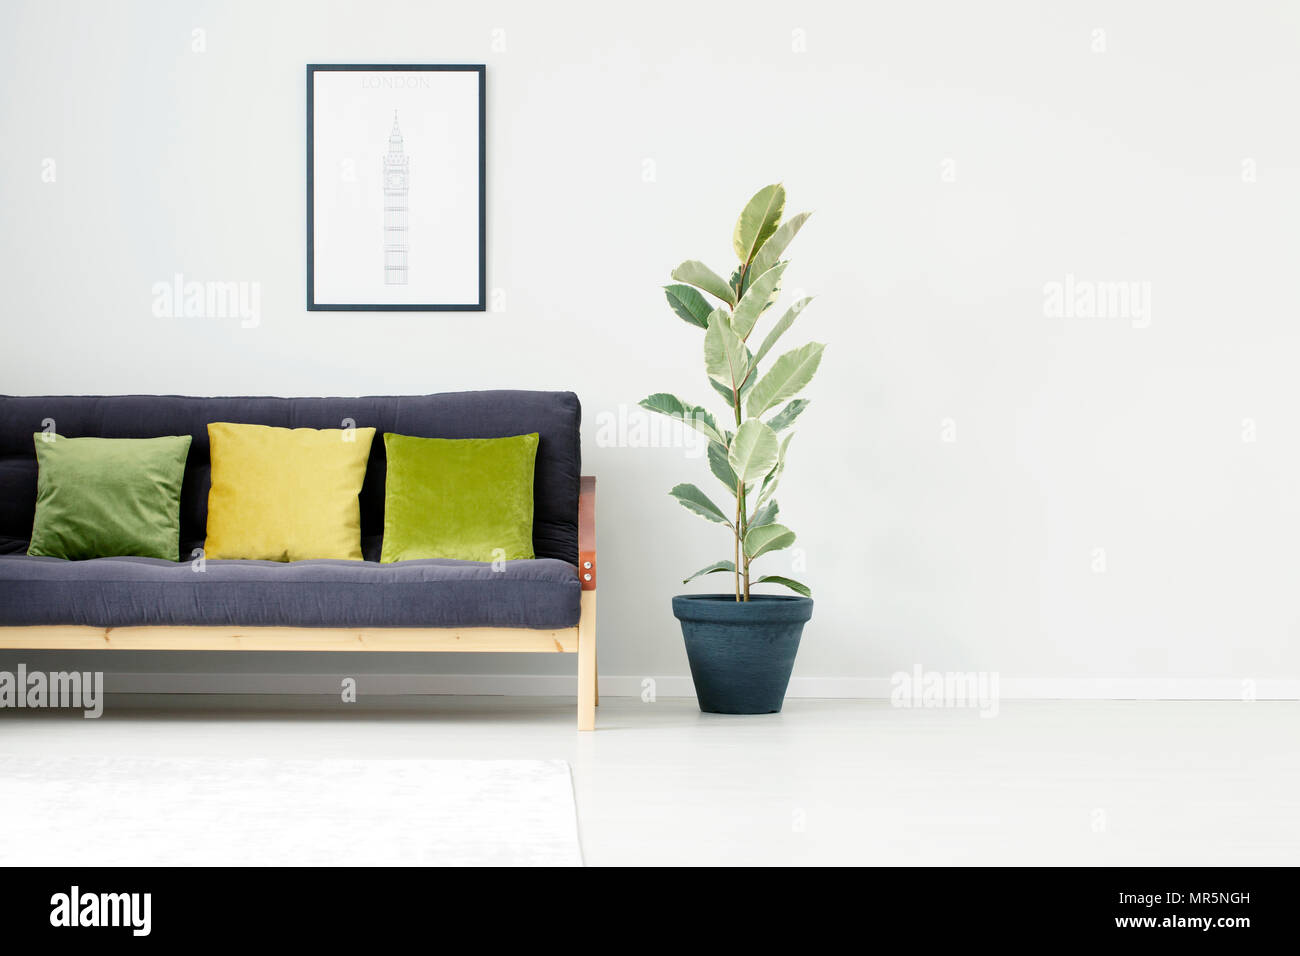 Picture of: Ficus Tree Next To Black Sofa With Green And Yellow Pillow In Living Room Interior With Poster And Copy Space Stock Photo Alamy